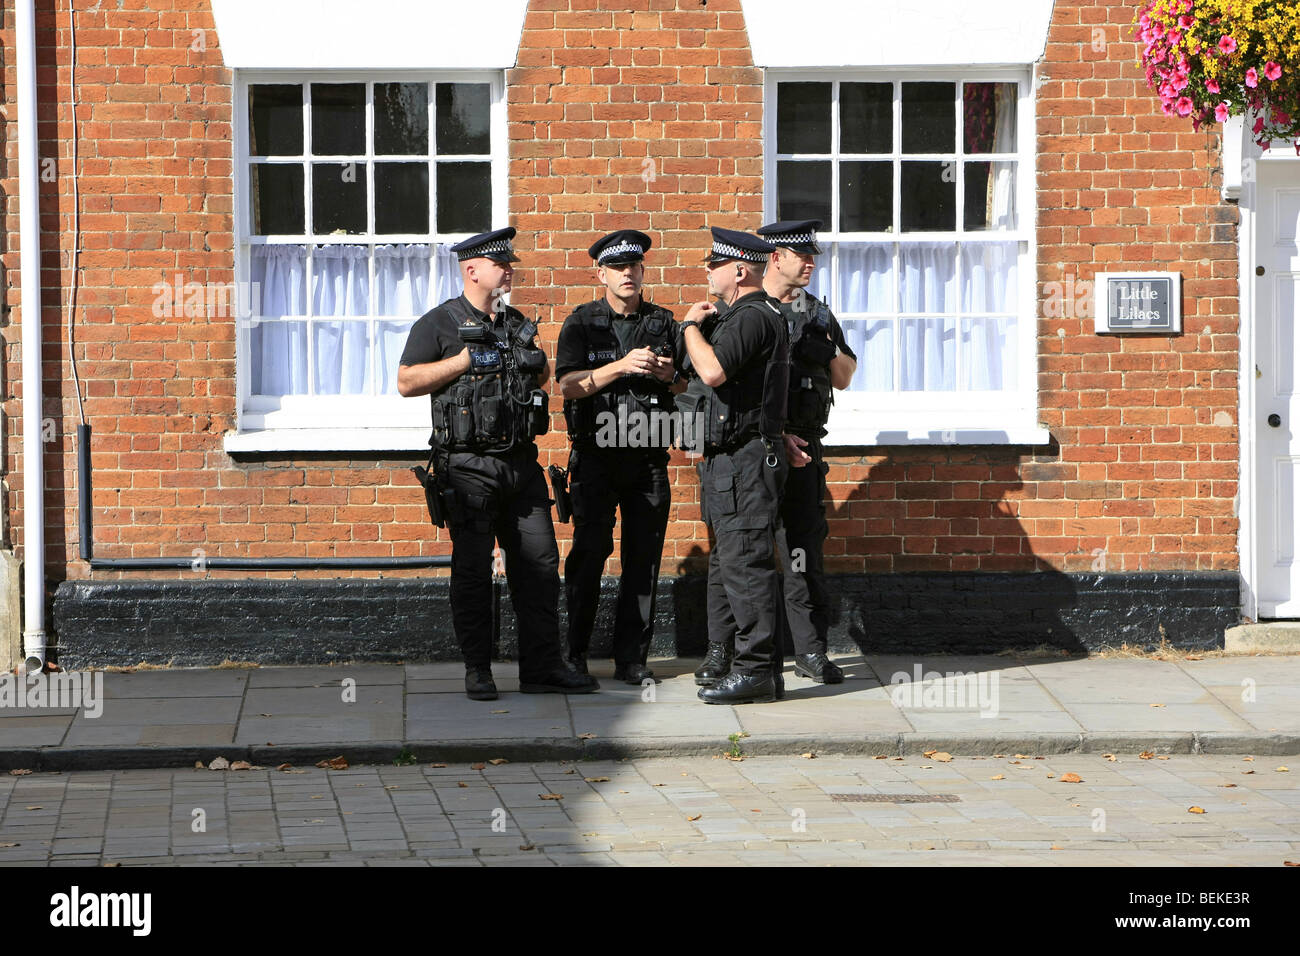 SWAT Police on duty wearing full body armor and carrying guns in Wootton Bassett Wiltshire - Stock Image